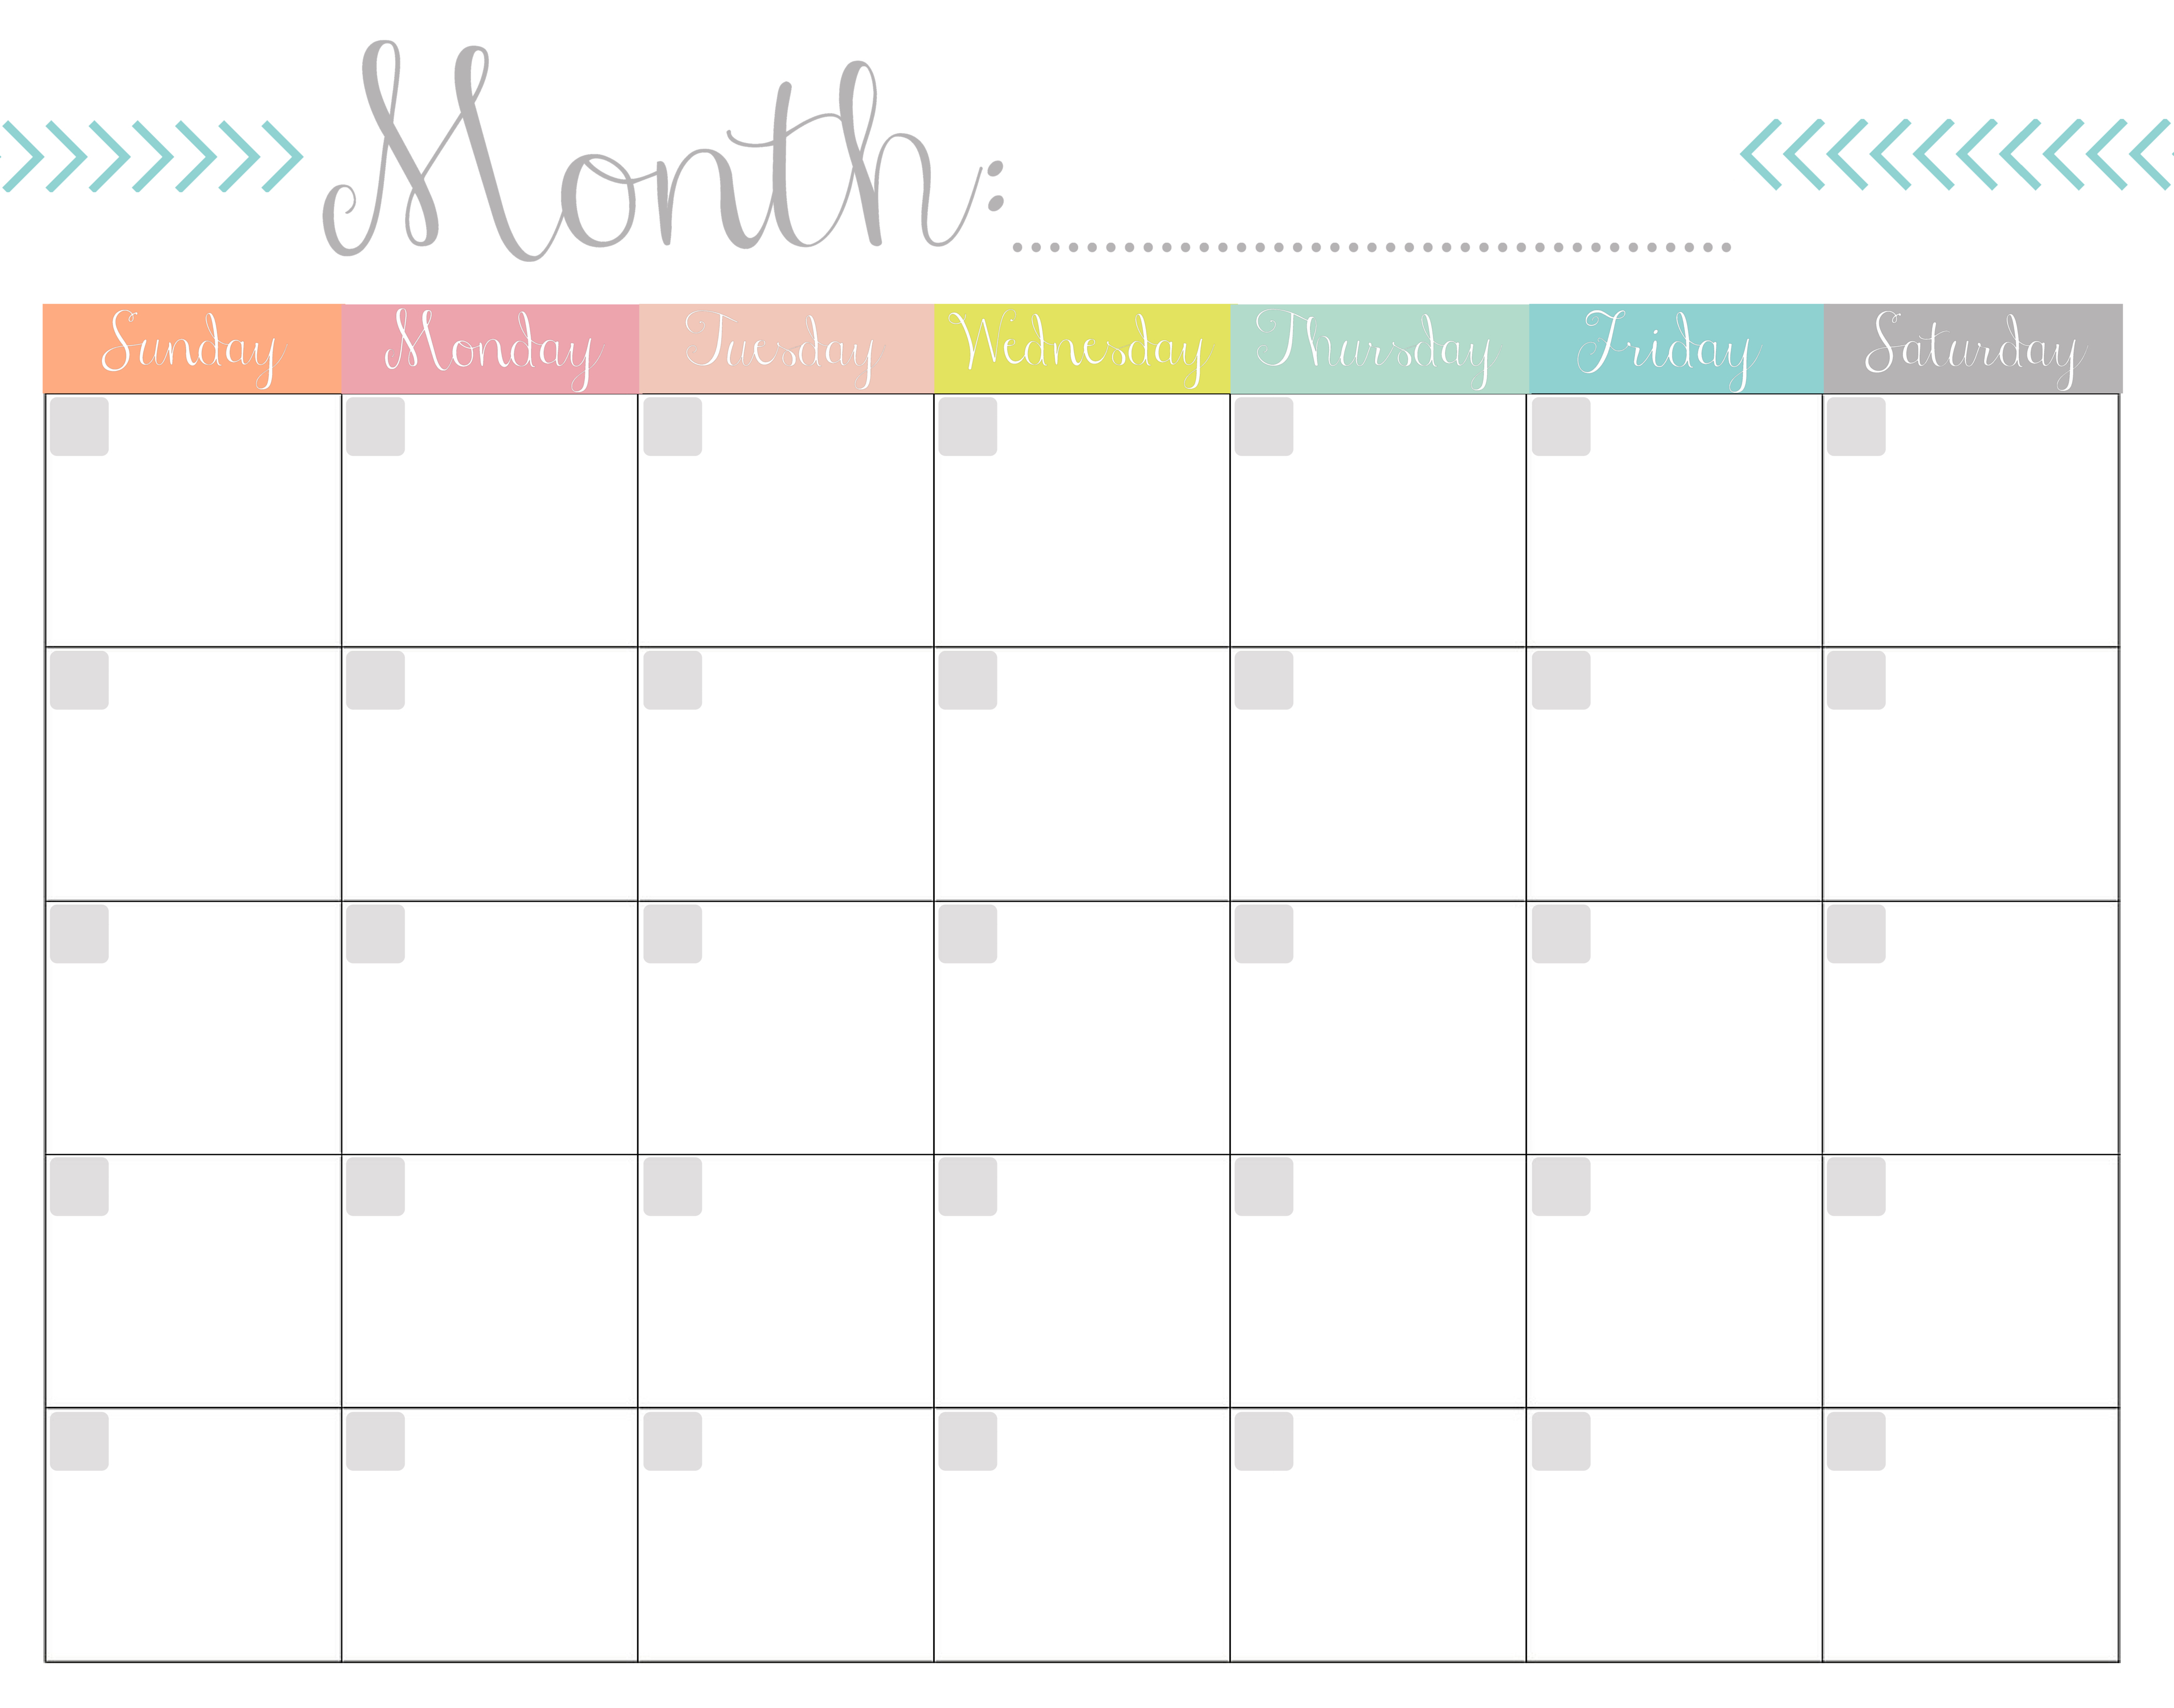 Free Monthly Calendars - Tunu.redmini.co